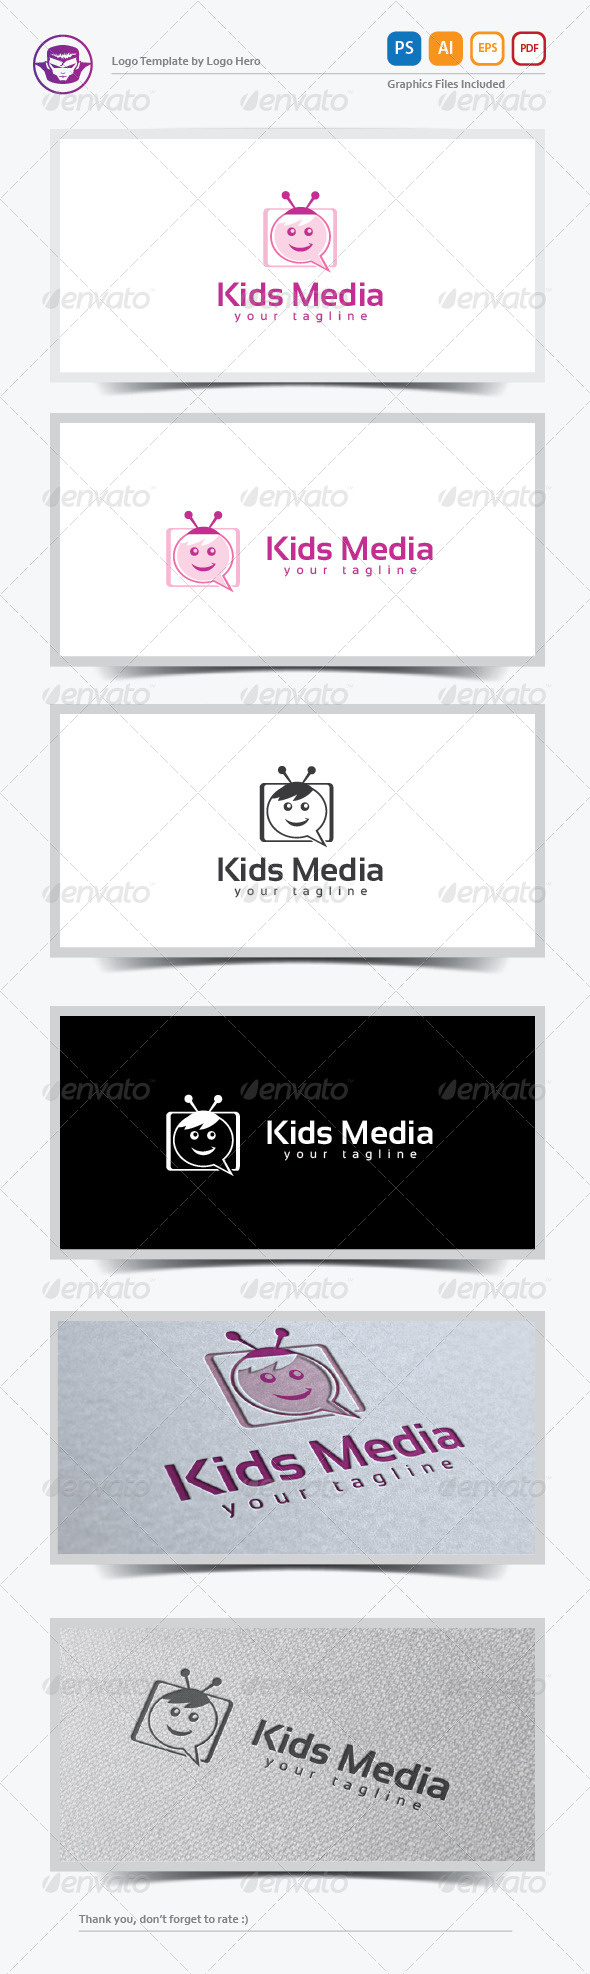 GraphicRiver Kids Media Logo Template 8259771